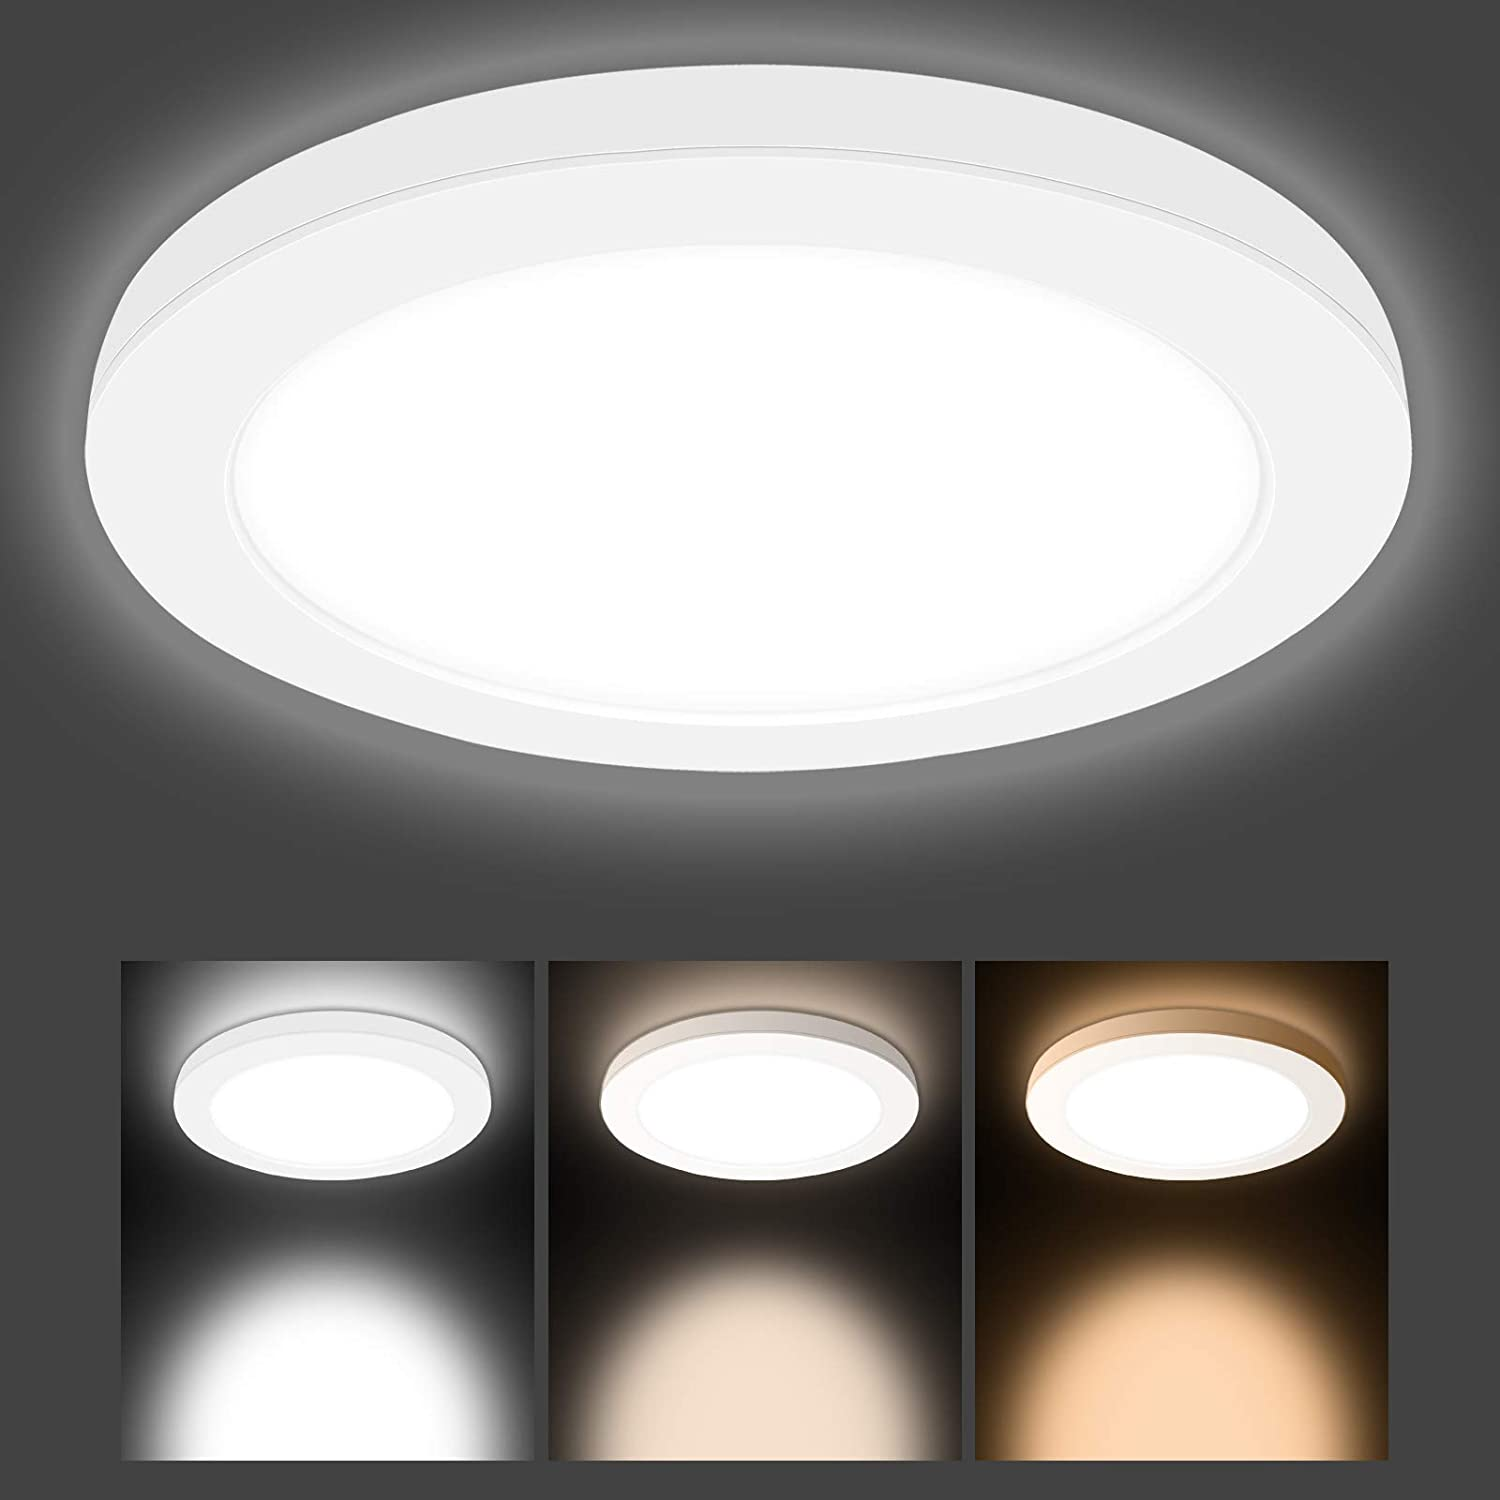 3000k//4000k//6000k 2200LM LED Round Ceiling Lighting 30cm Indoor Ceiling Lamp for Bedroom Kitchen Living Room Hallway Office Stairwell Hidixon 24W LED Surface Mount Ceiling Light